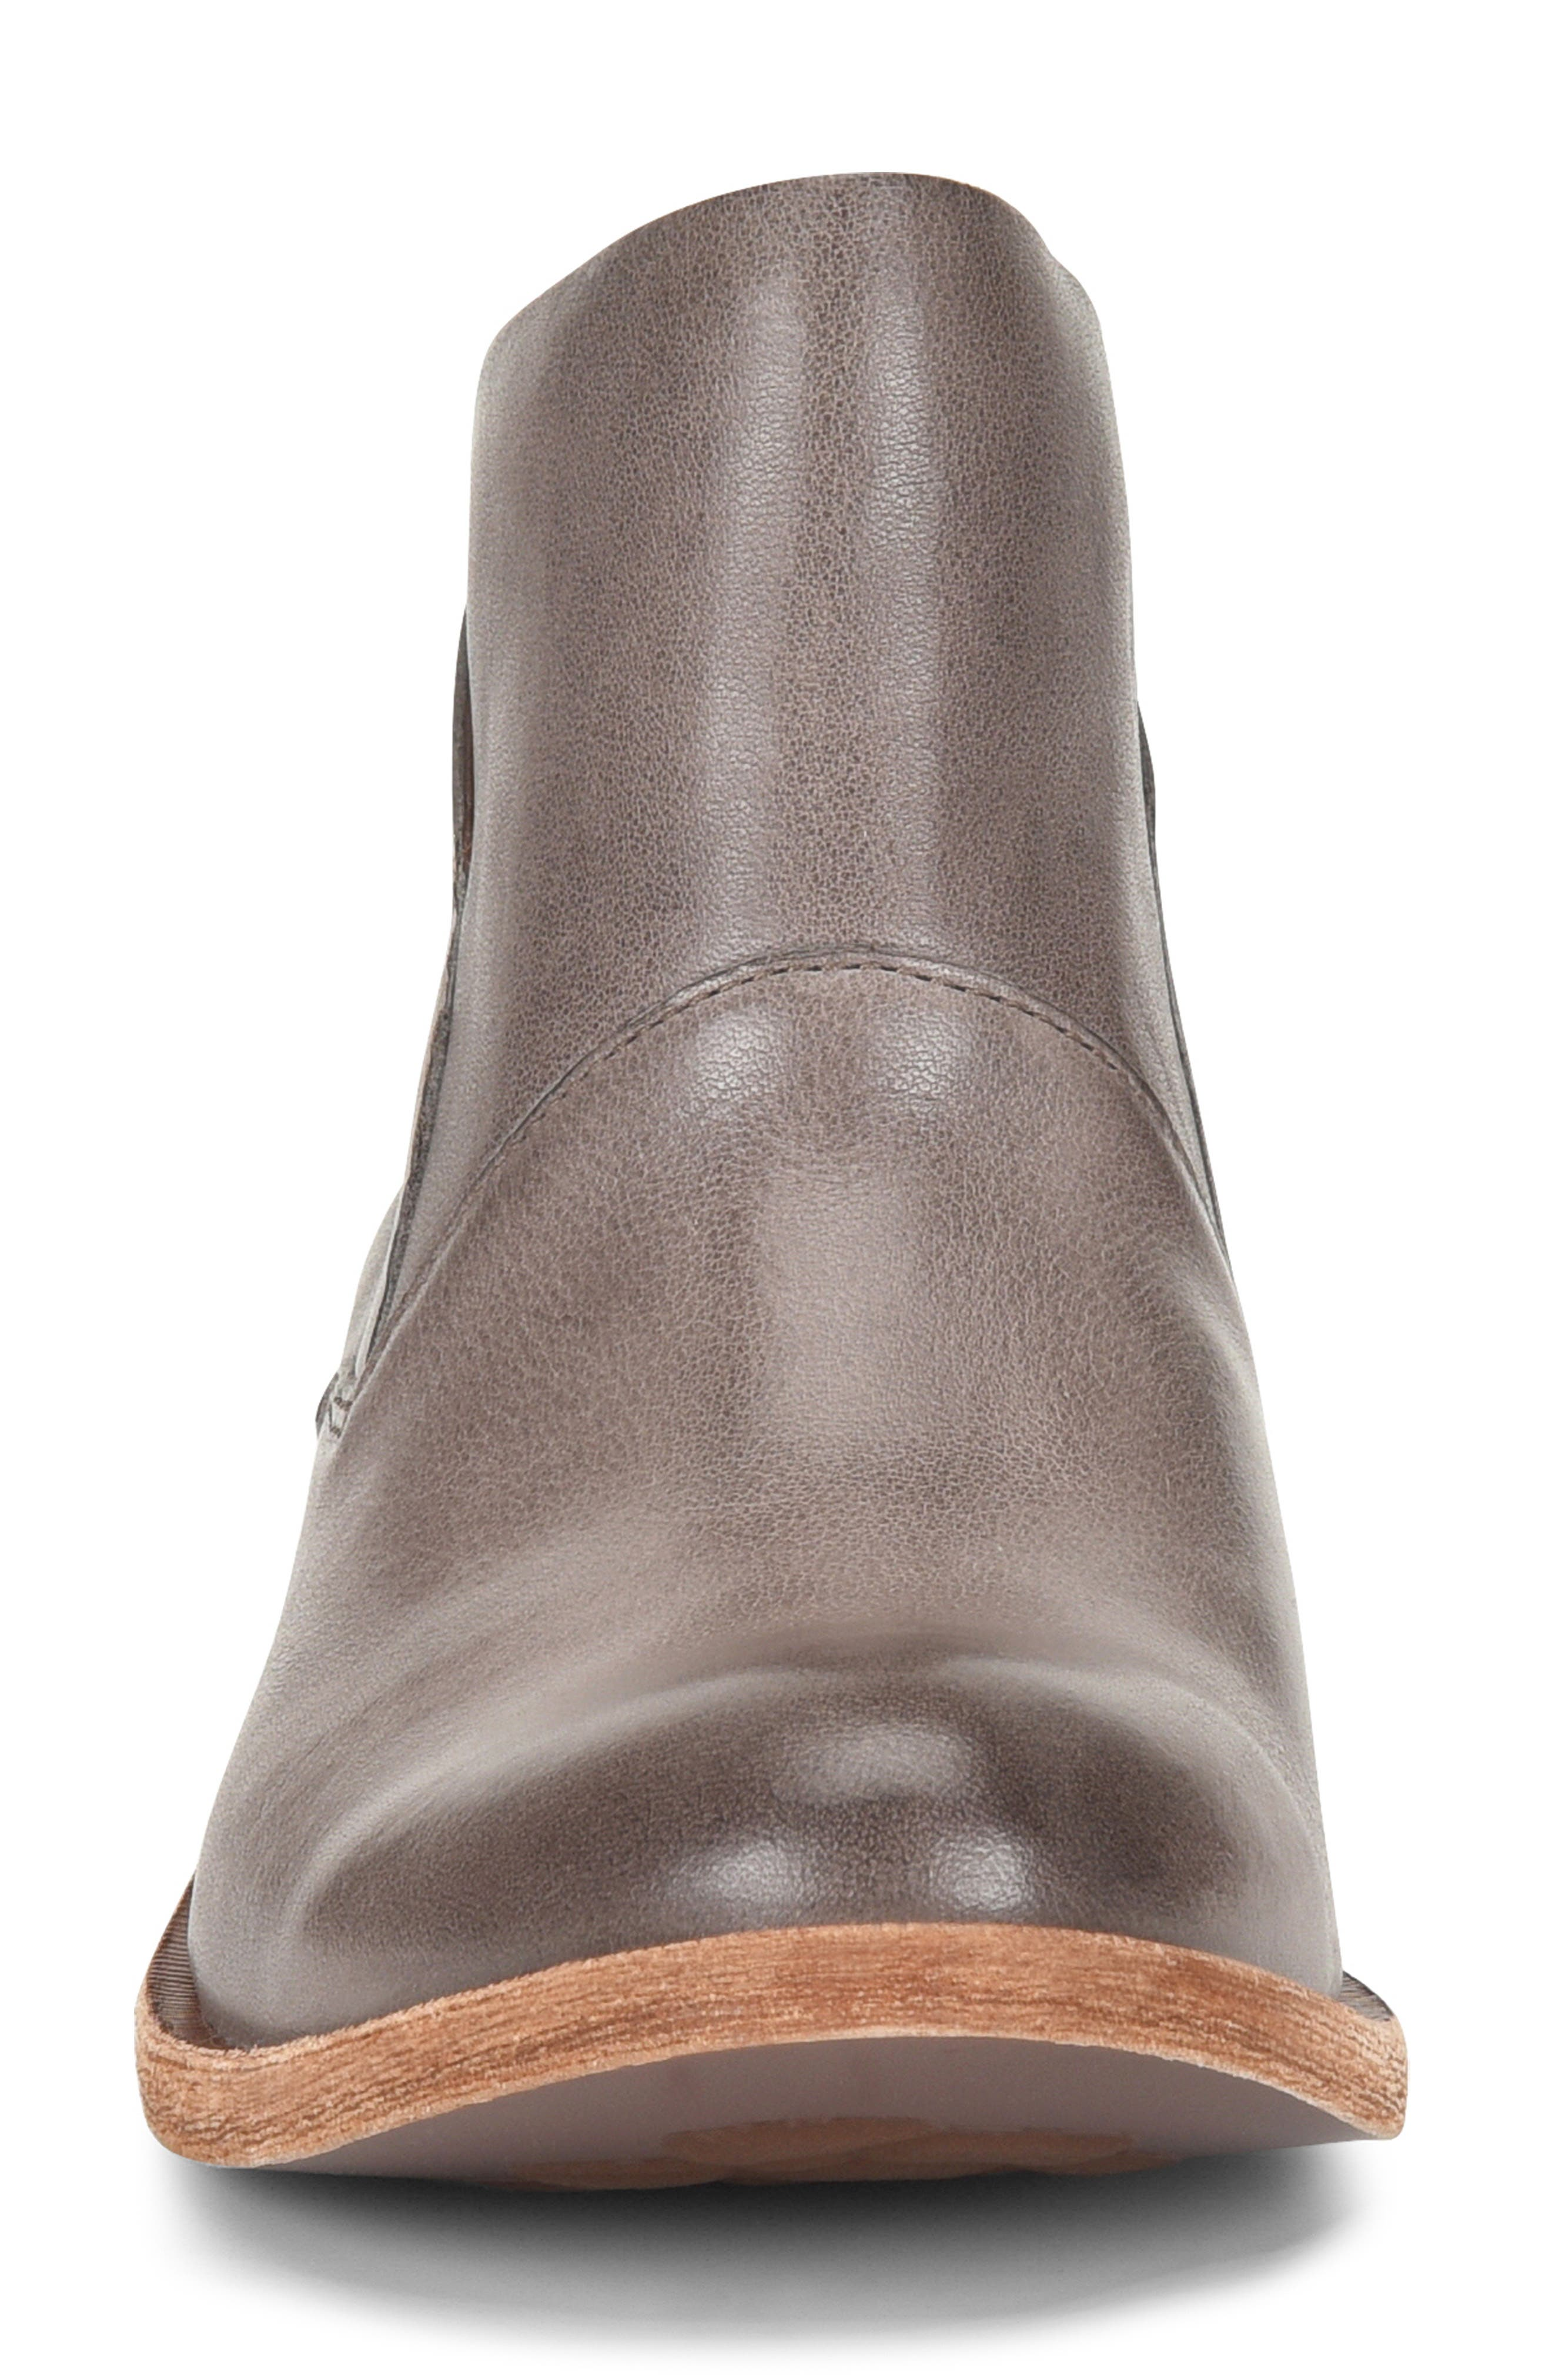 Ryder Ankle Boot,                             Alternate thumbnail 4, color,                             GREY LEATHER